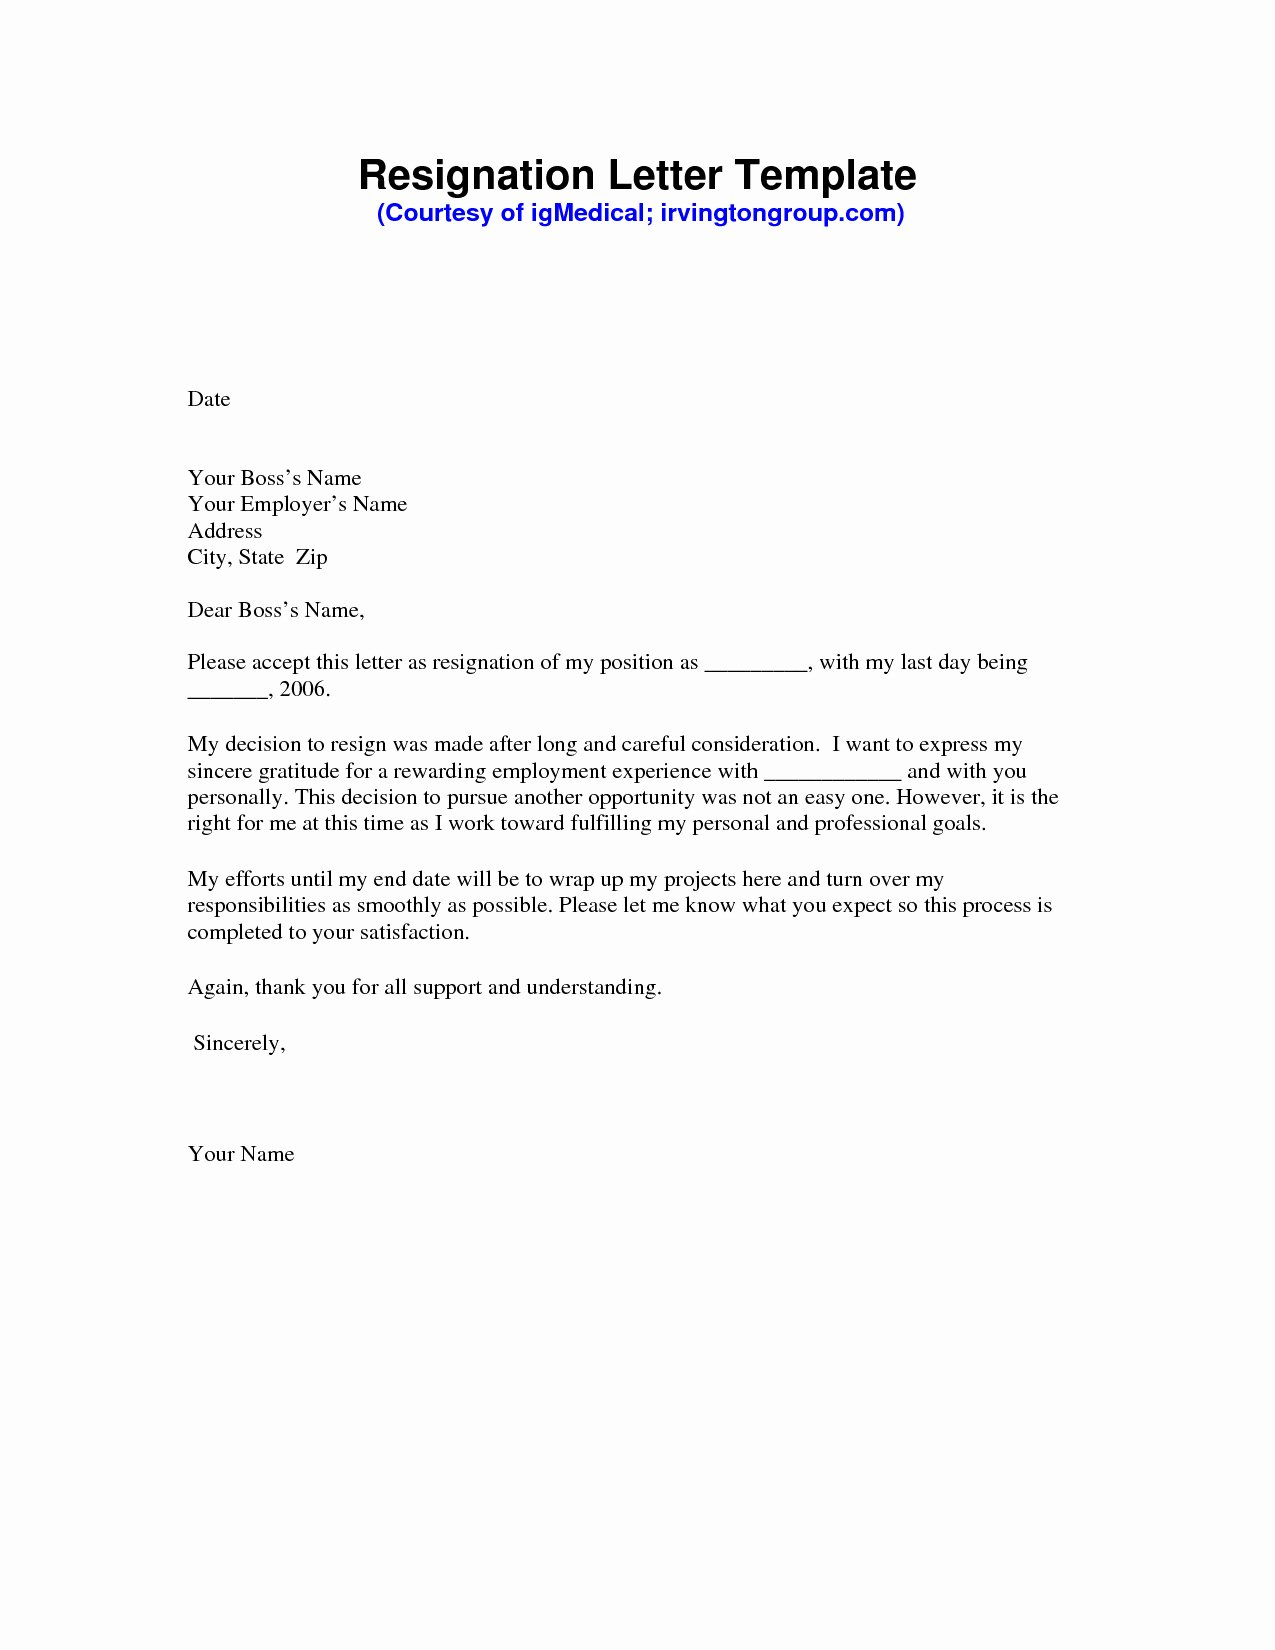 Resignation Letter 30 Days Notice Lovely assisted Living 30 Day Notice Letter Template Examples